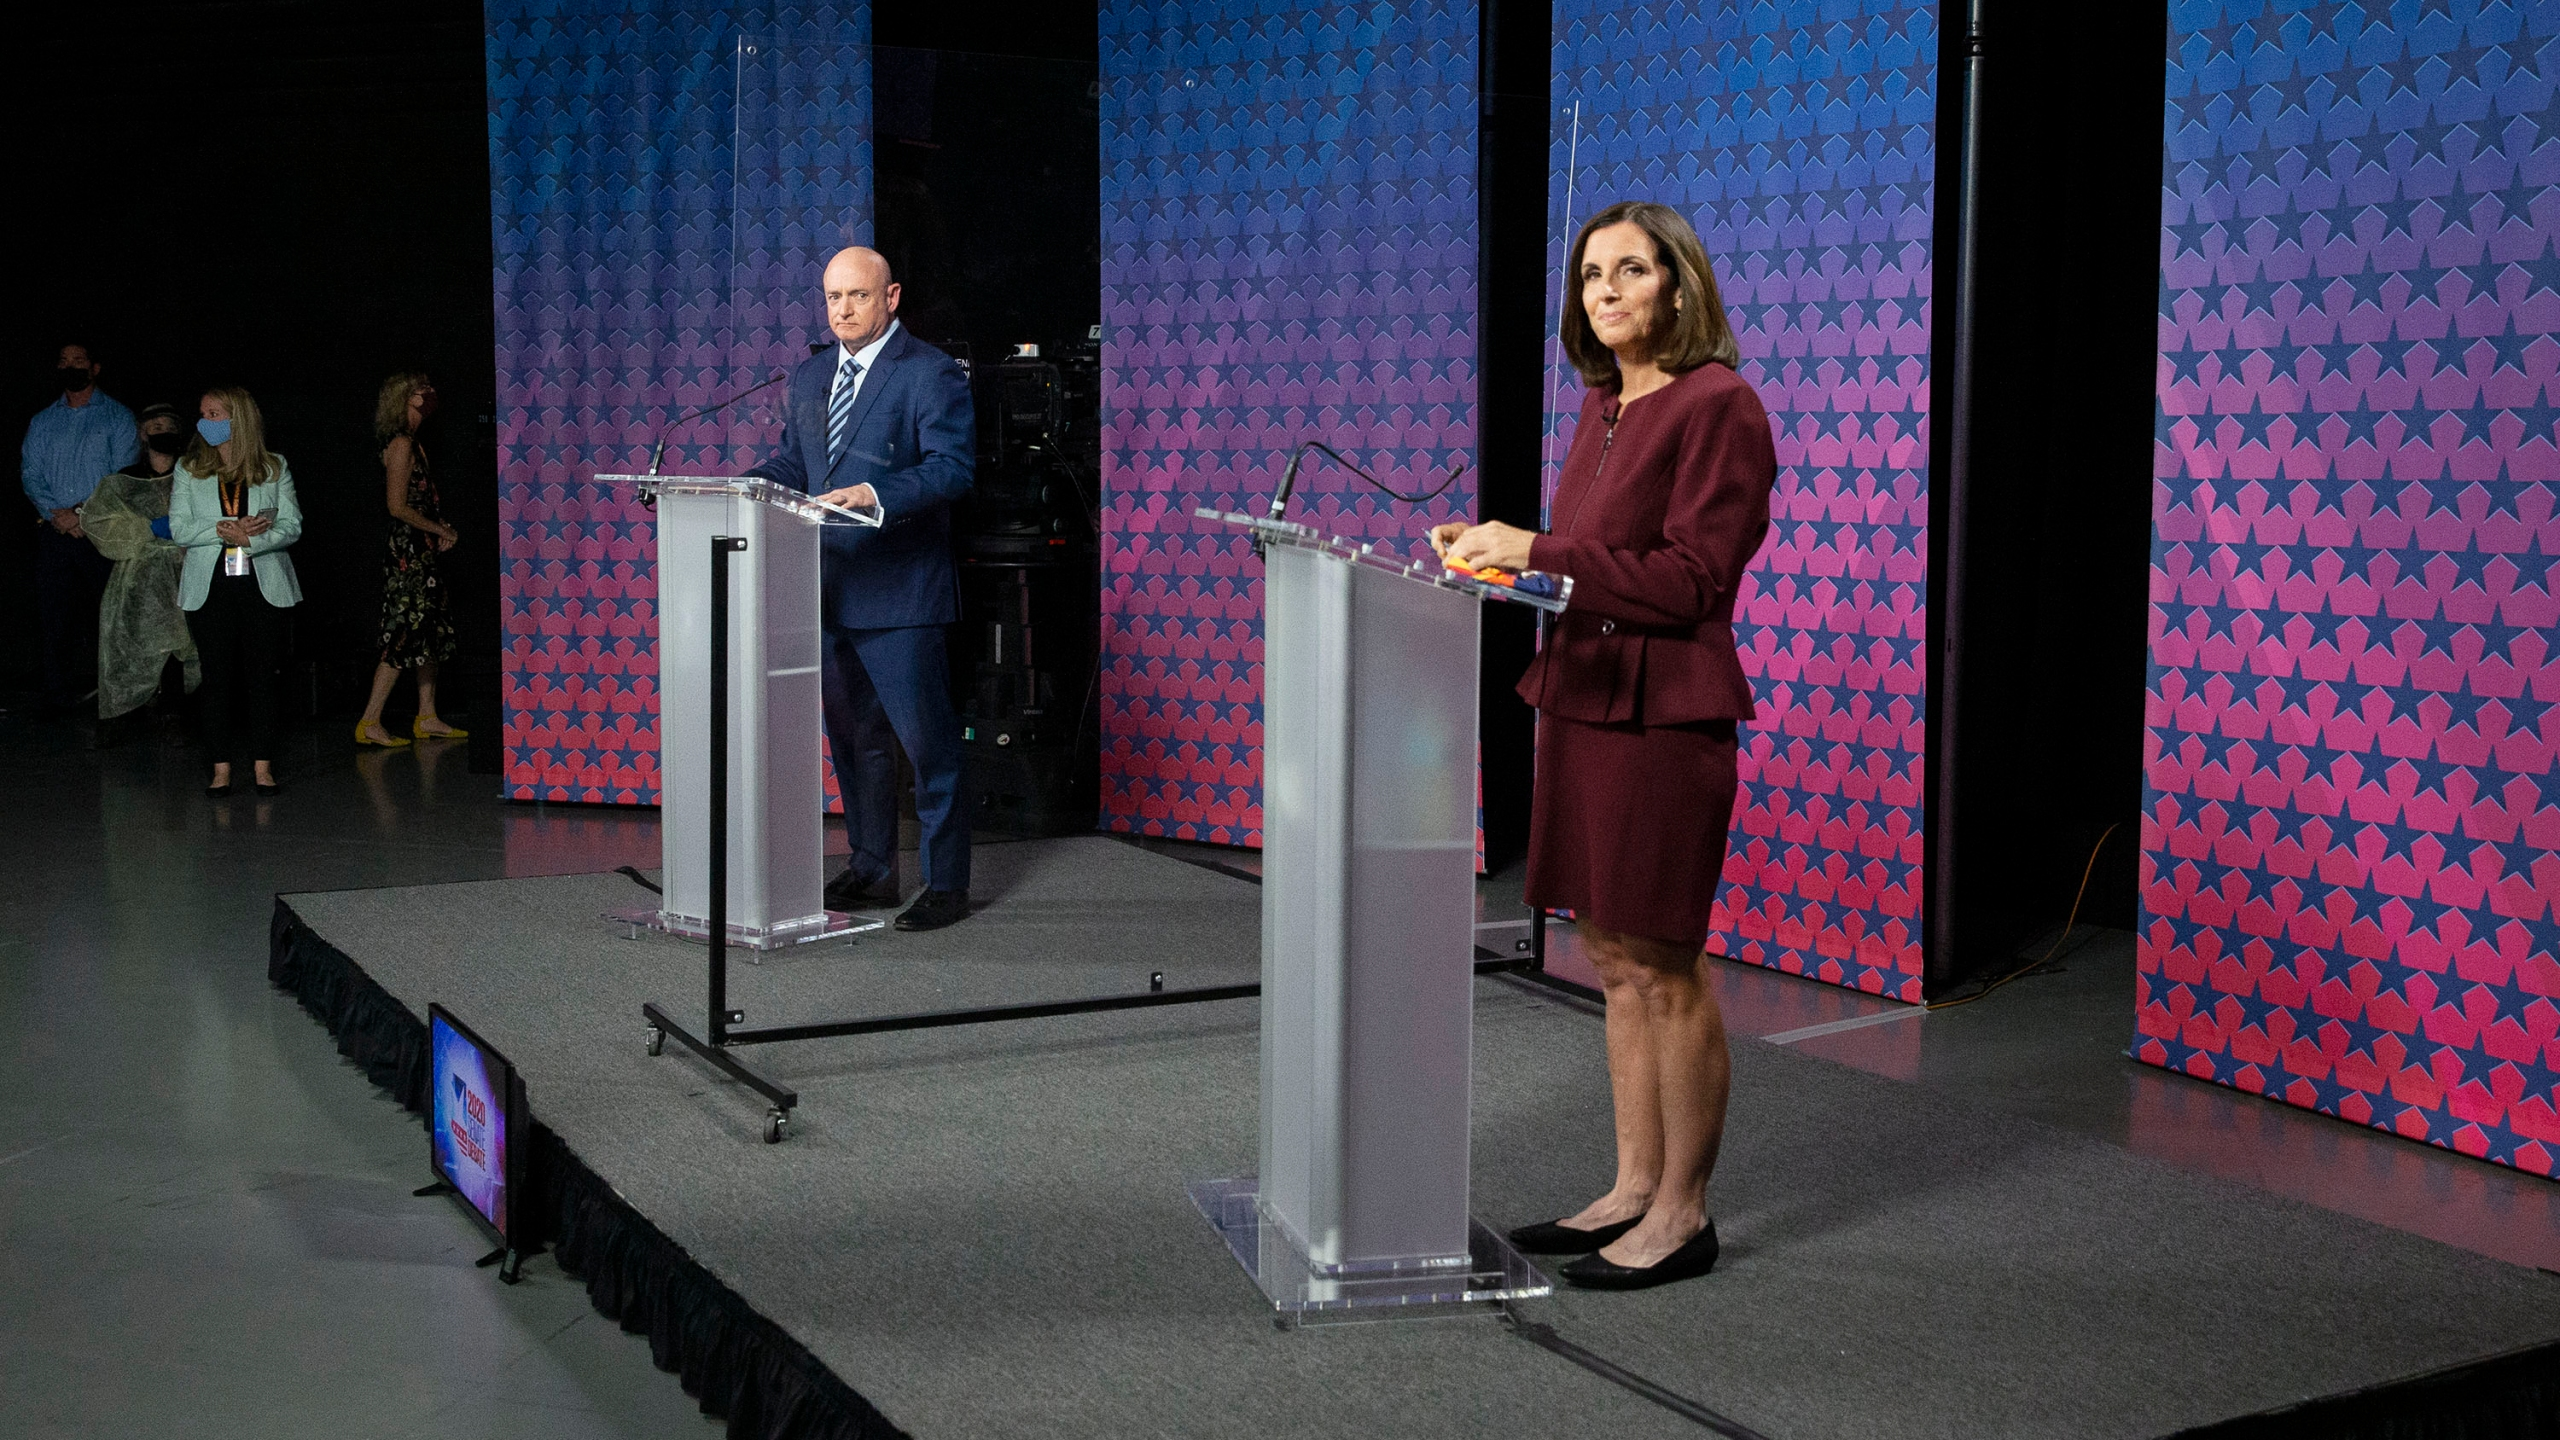 U.S. Senator Martha McSally (R-AZ) and Democratic challenger Mark Kelly are separated by plexiglass as they participate in a debate at the Walter Cronkite School of Journalism at Arizona State University in Phoenix, Arizona, on October 6, 2020. (Photo by Rob SCHUMACHER / POOL / AFP) (Photo by ROB SCHUMACHER/POOL/AFP via Getty Images)